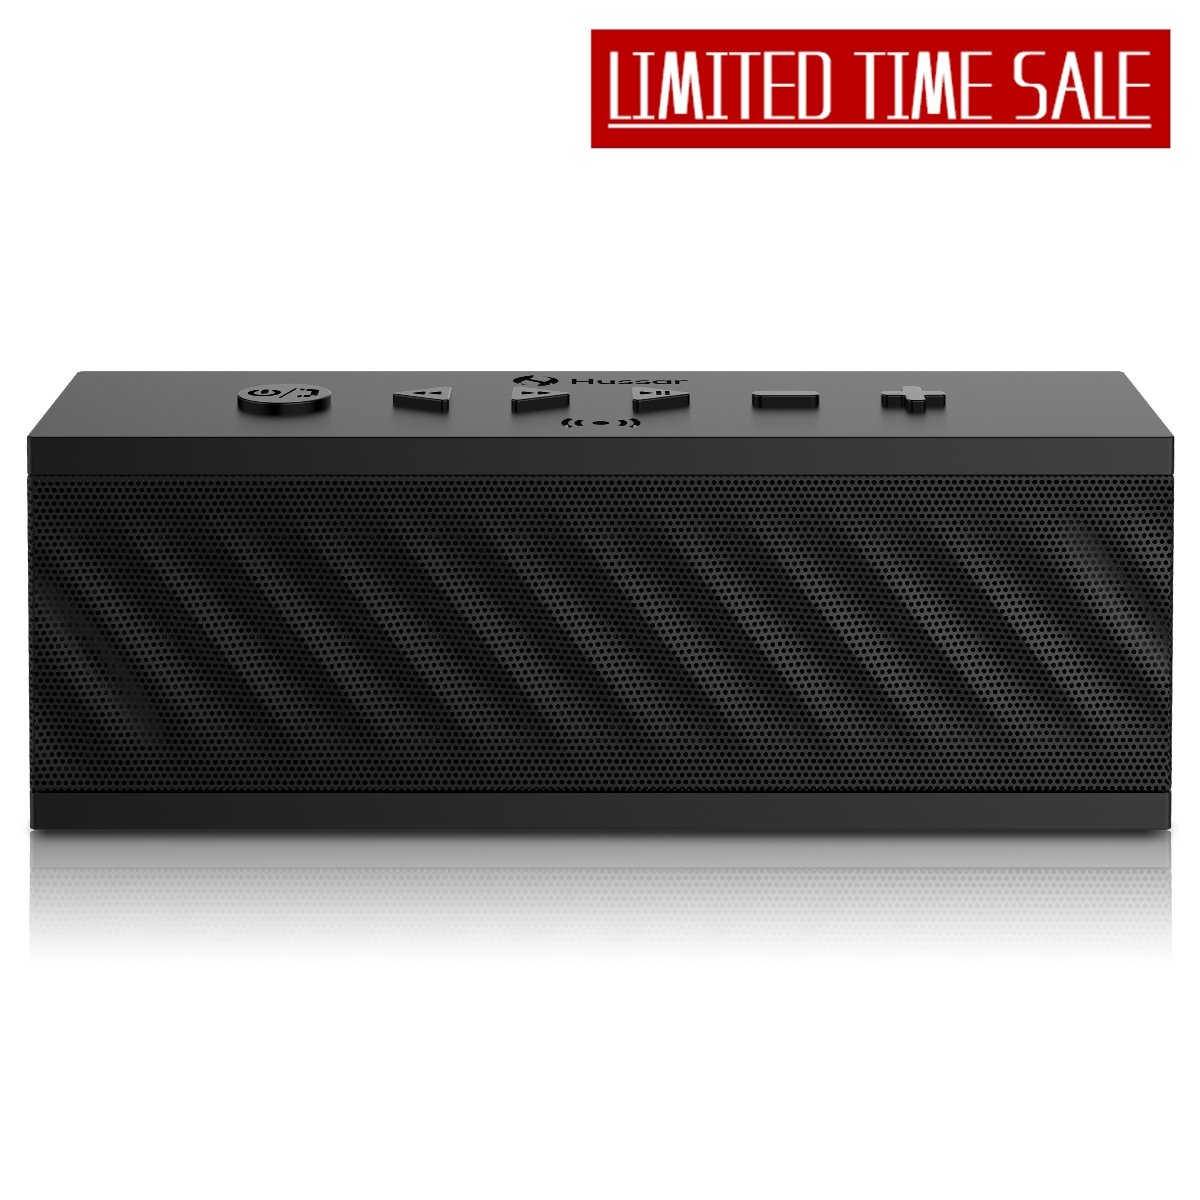 HUSSAR Bluetooth Speakers, 16W Portable Wireless Speaker, Premium Sound Enhanced Bass Selectable Sound Effects, IPX5 Waterproof, Built-in Mic Siri Hussar Inc mbox_pro